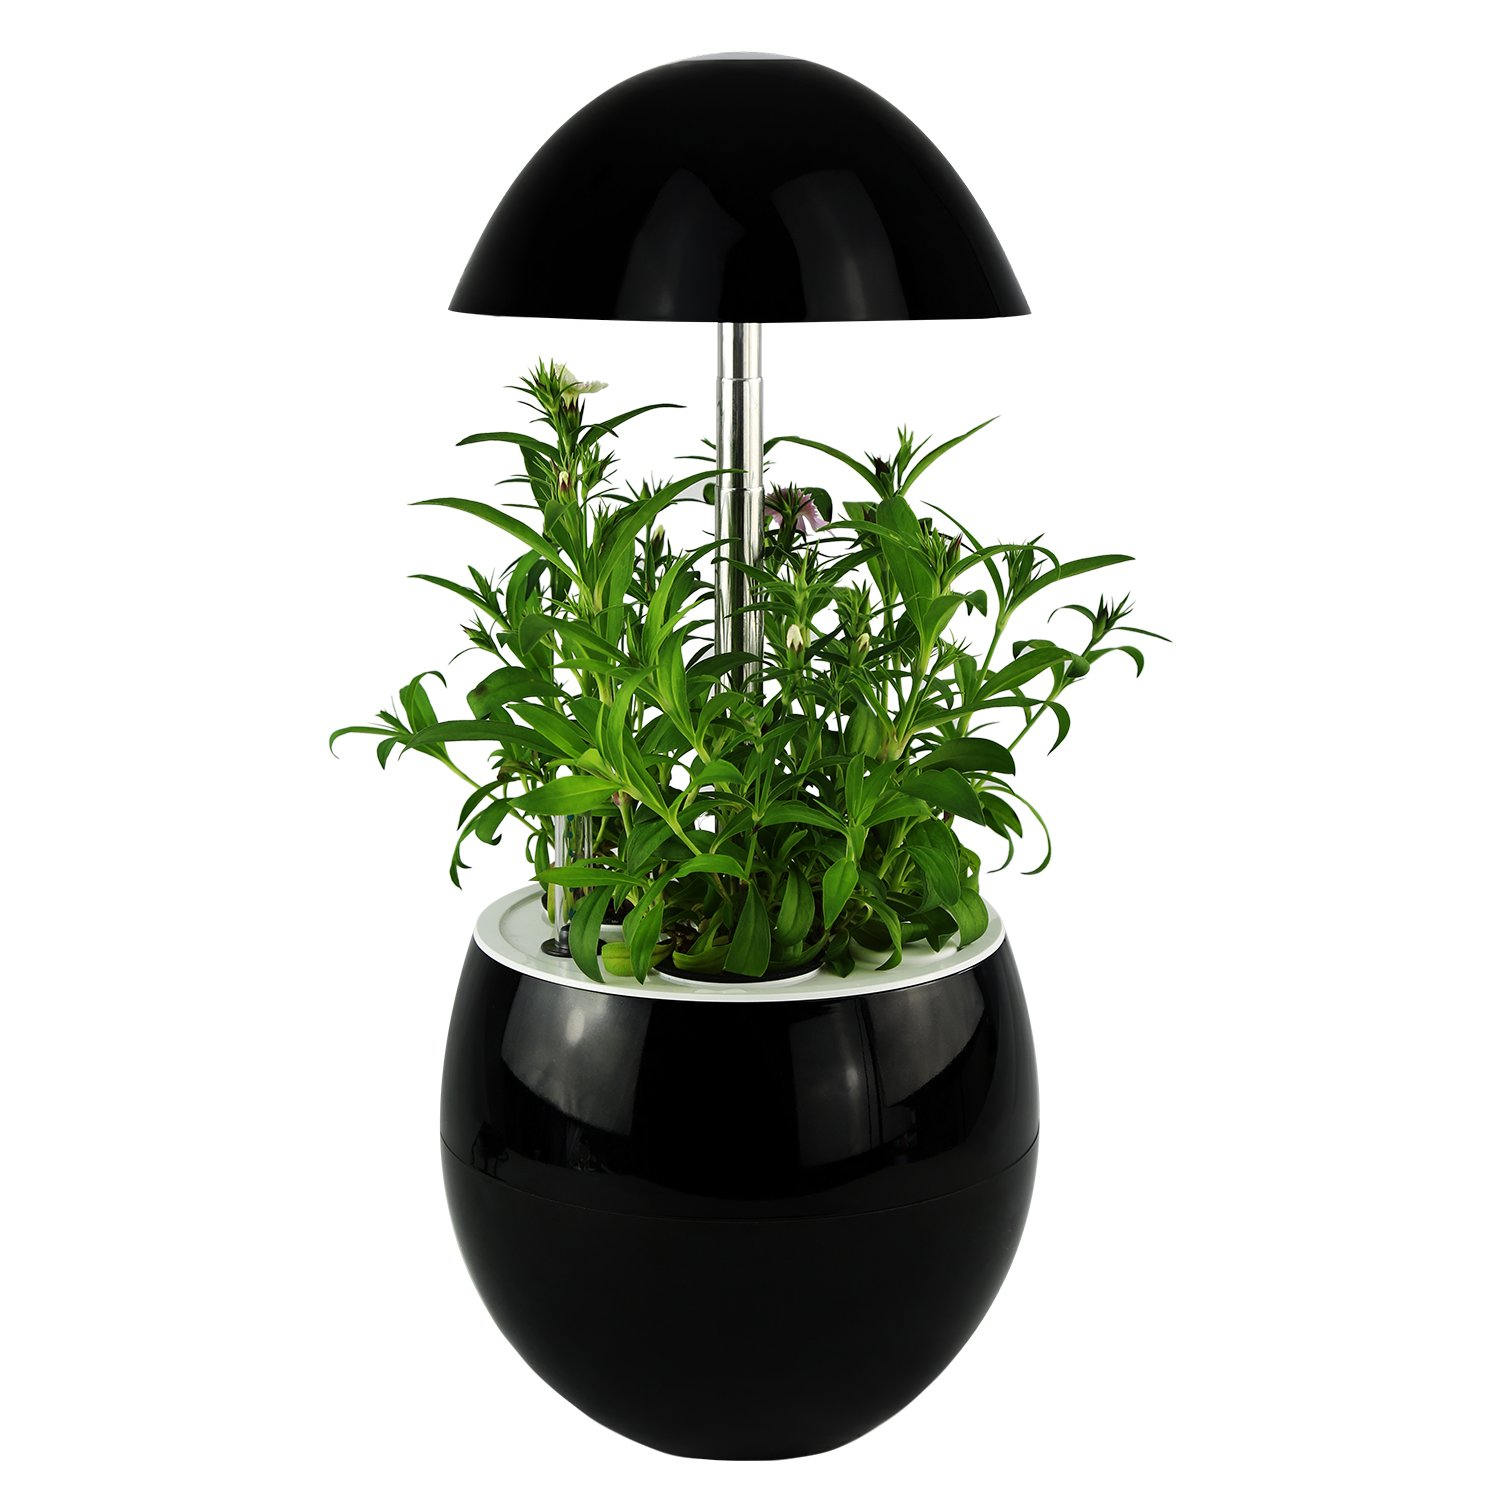 Decorative Indoor Garden Lamp Hydroponic Self Watering System, Complete Planter Pod Kit, Seeds & Led Light Grows Herbs, Flowers, Succulents in Kitchen or Any Room by Domestic Diva LA (Black) by Domestic Diva LA